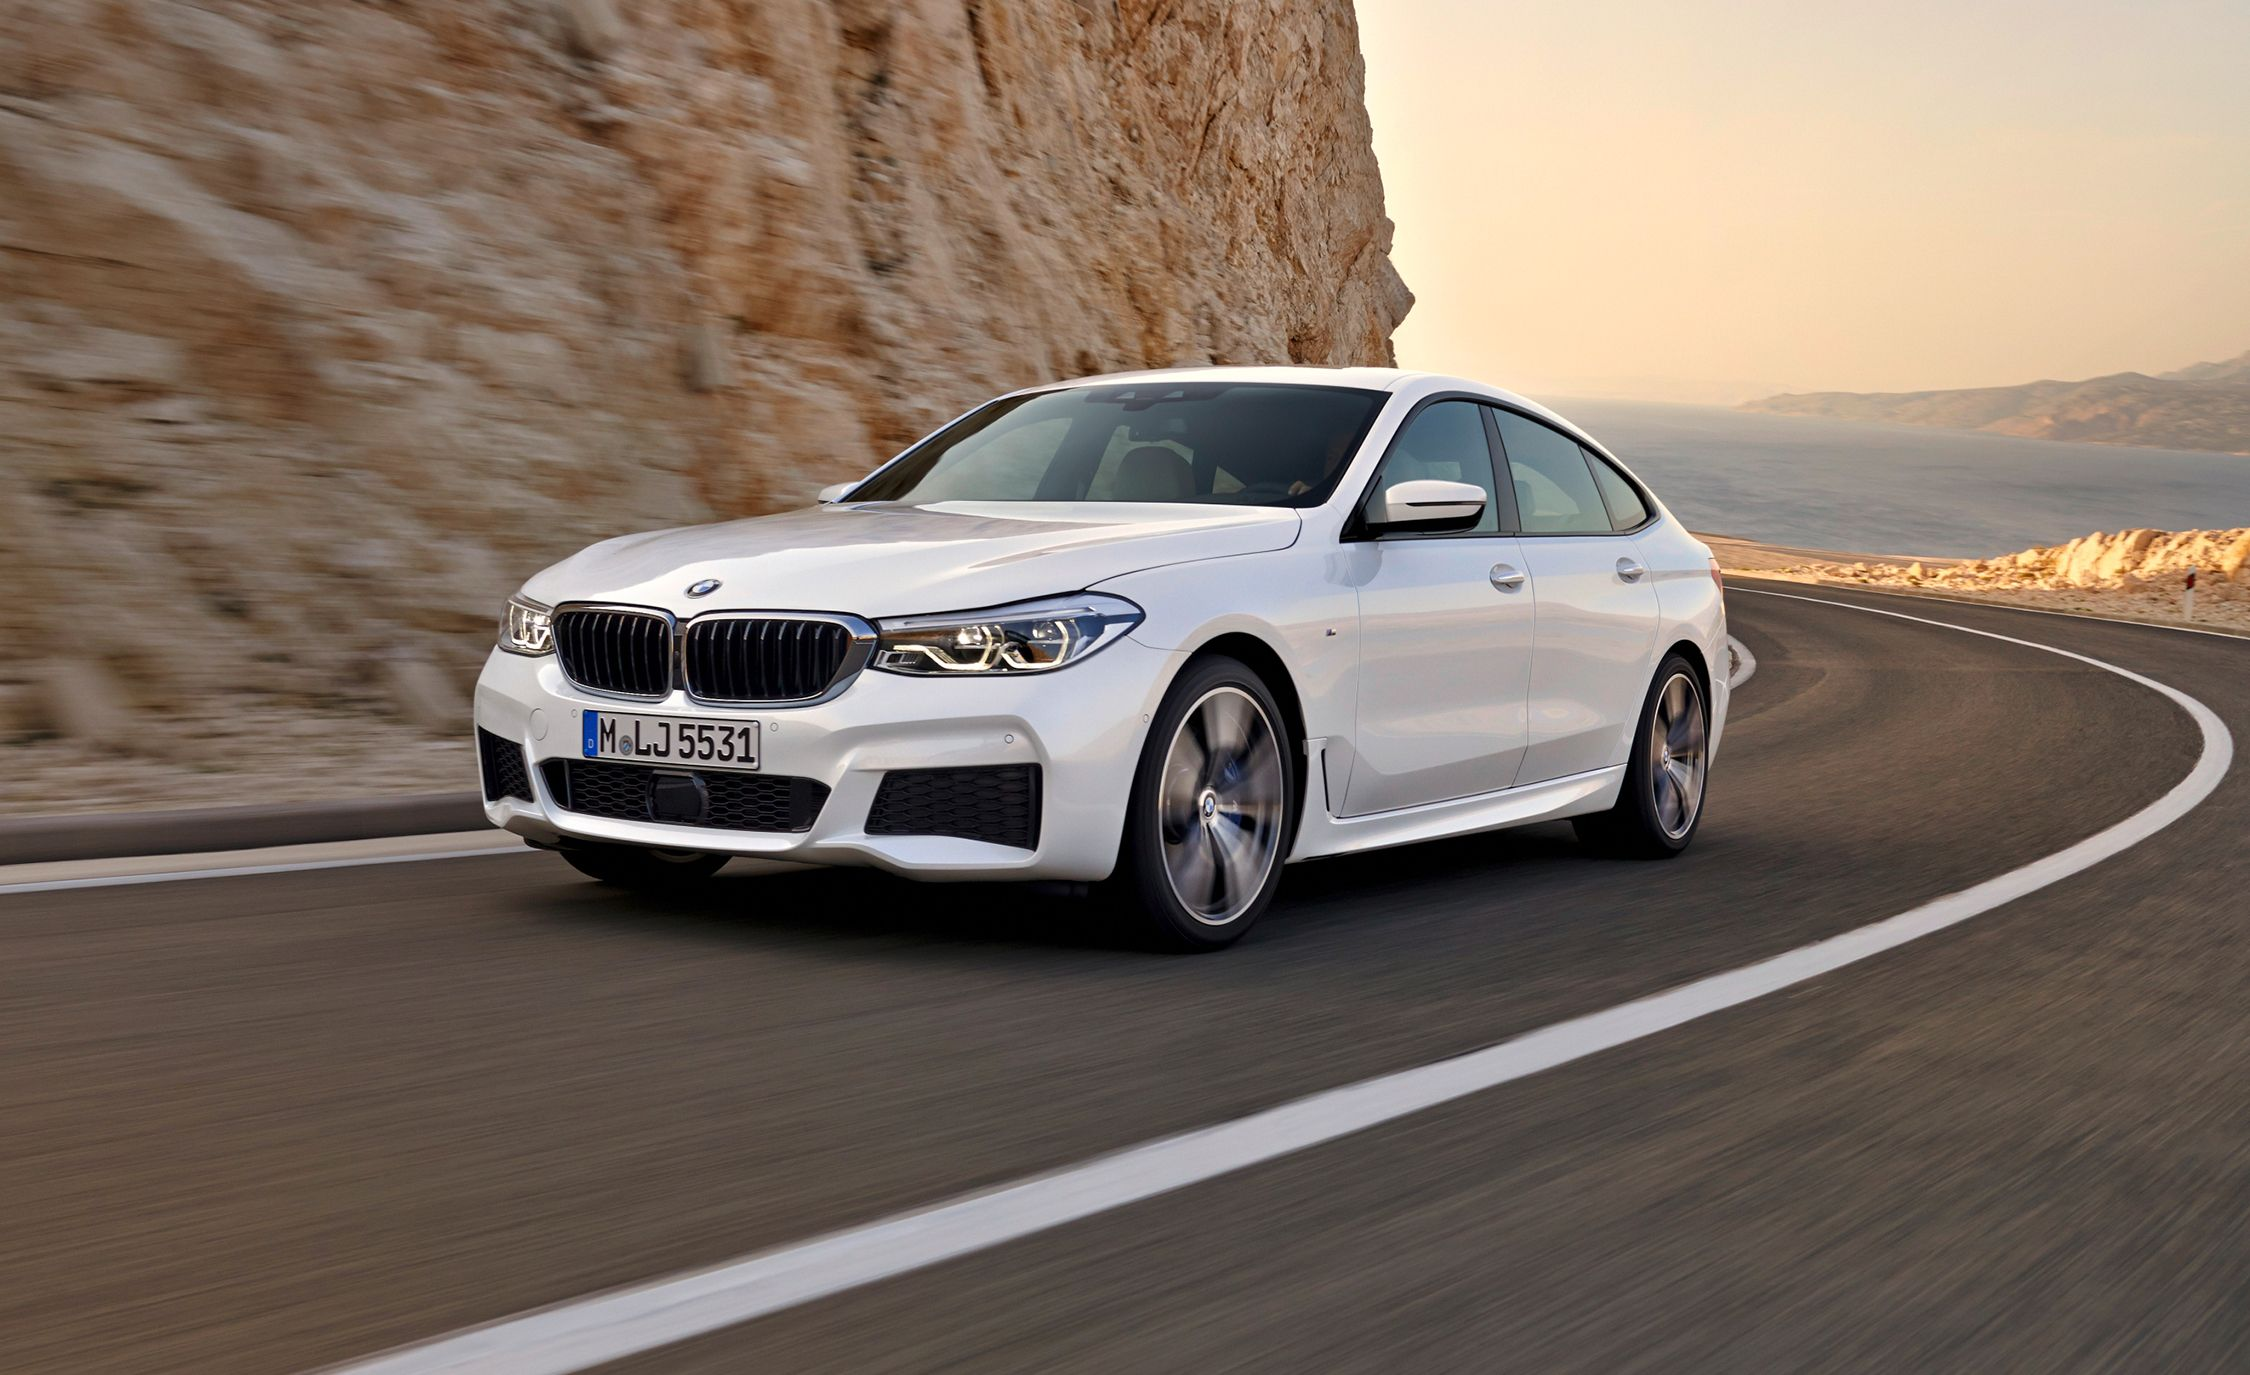 Bmw 3 Series For Sale >> 2018 BMW 6-series Gran Turismo Photos and Info | News | Car and Driver